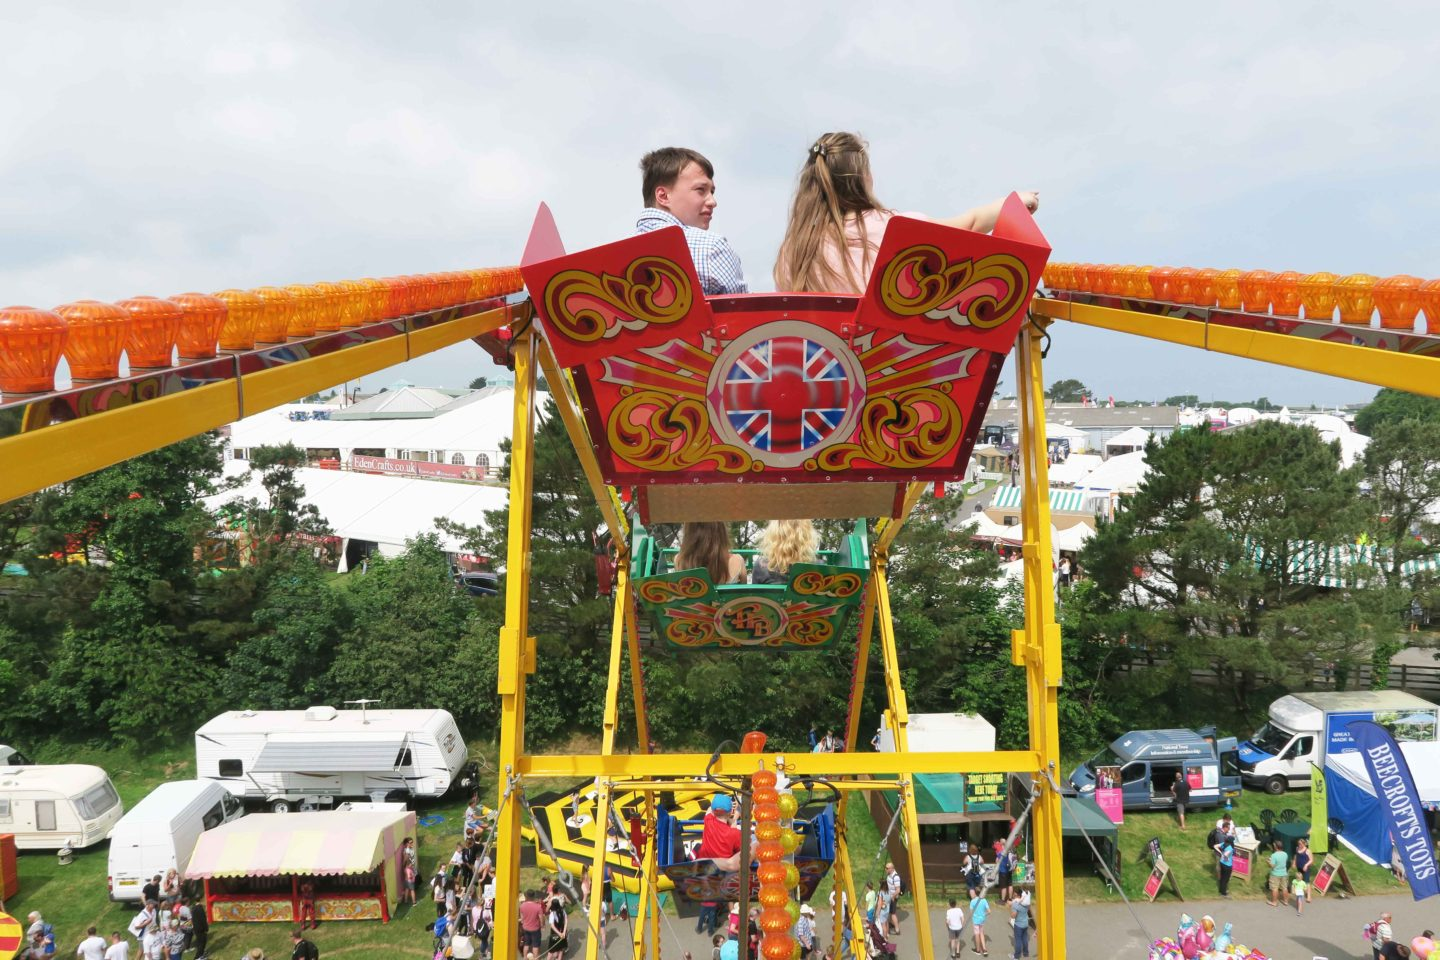 children on vintage ferris wheel at the fun fair in cornwall